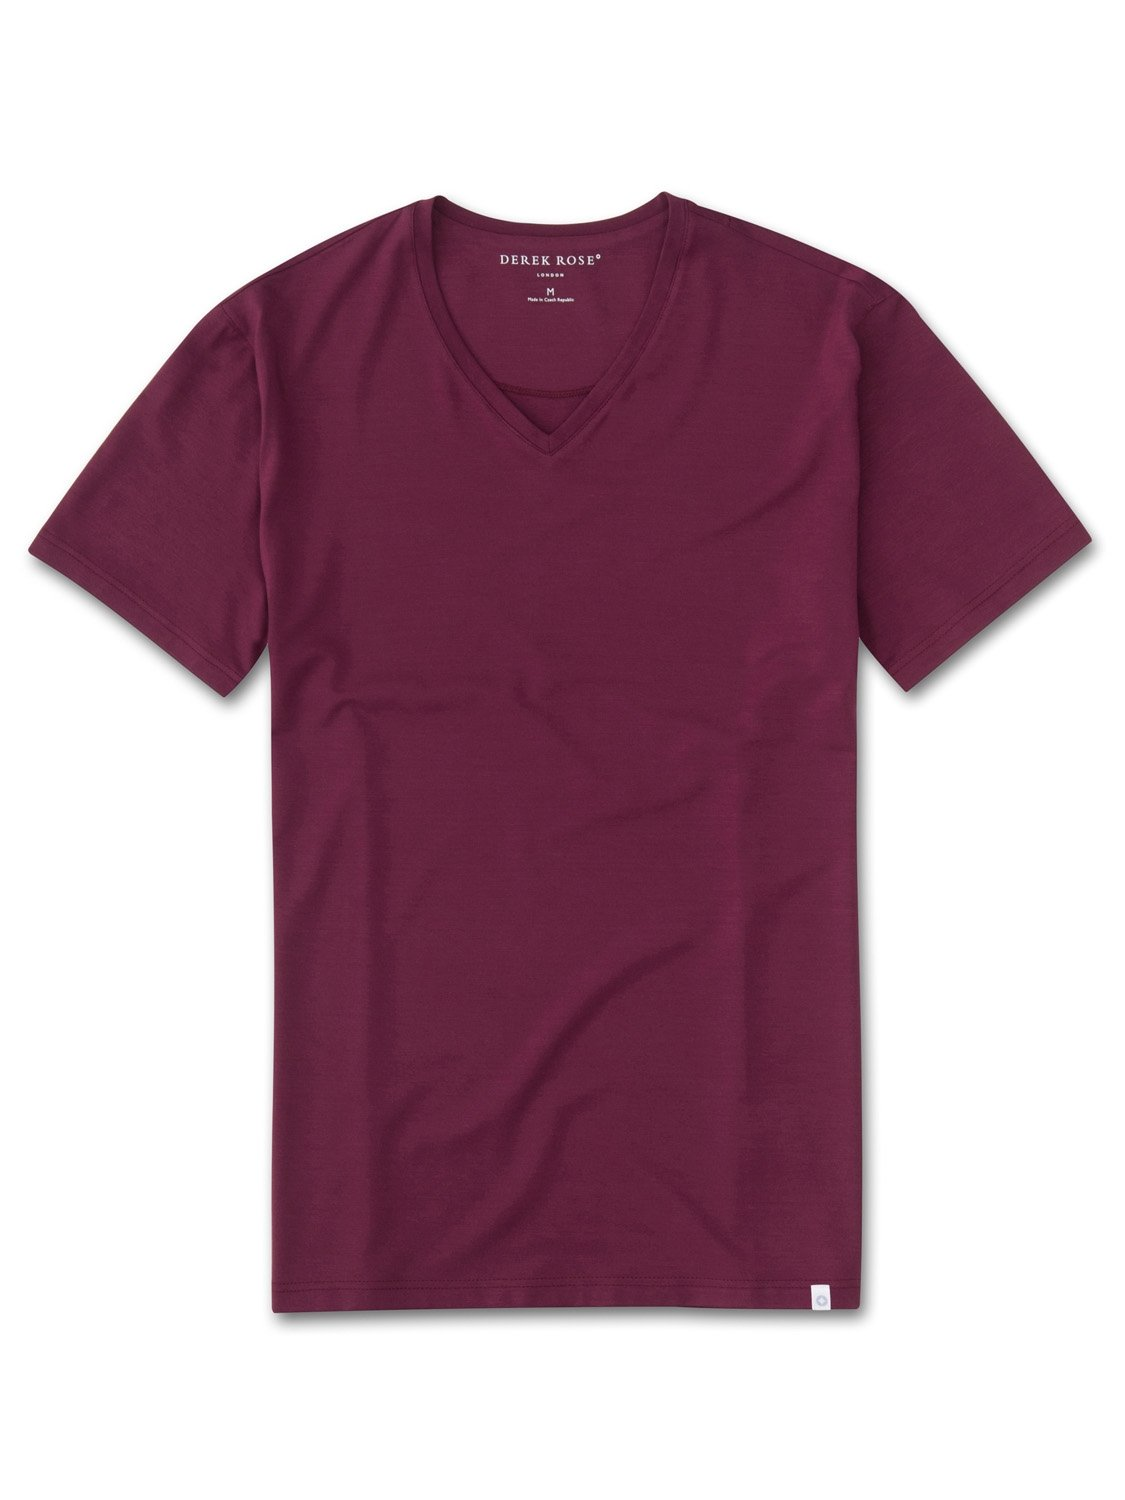 Men's Short Sleeve V-Neck T-Shirt Basel 5 Micro Modal Stretch Burgundy